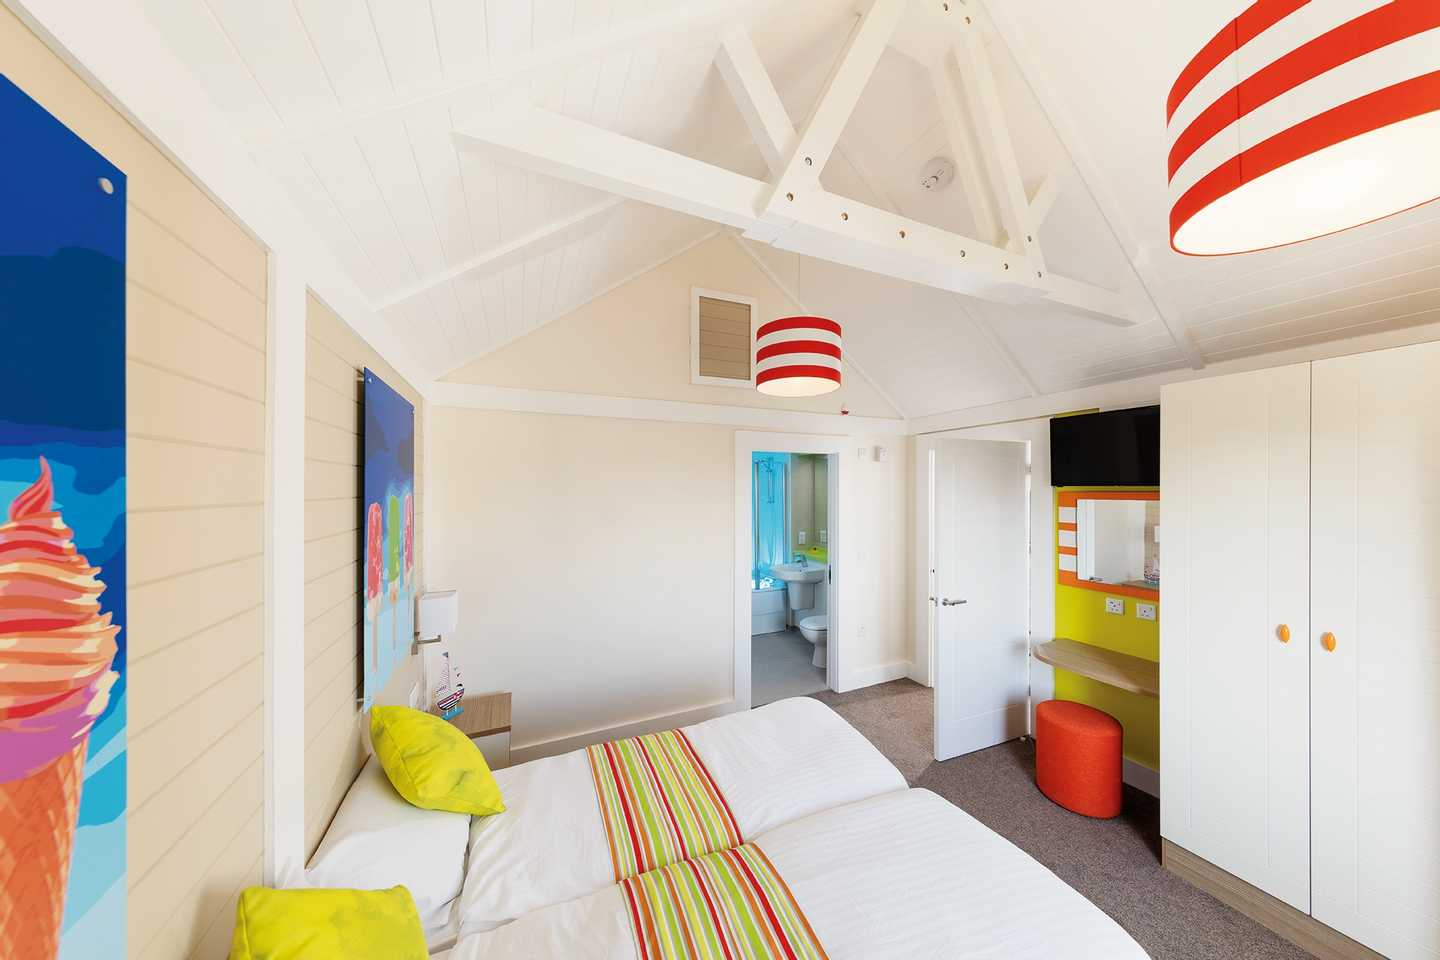 A Deck house twin bedroom with two beds, wardrobe, side table, TV and mirror